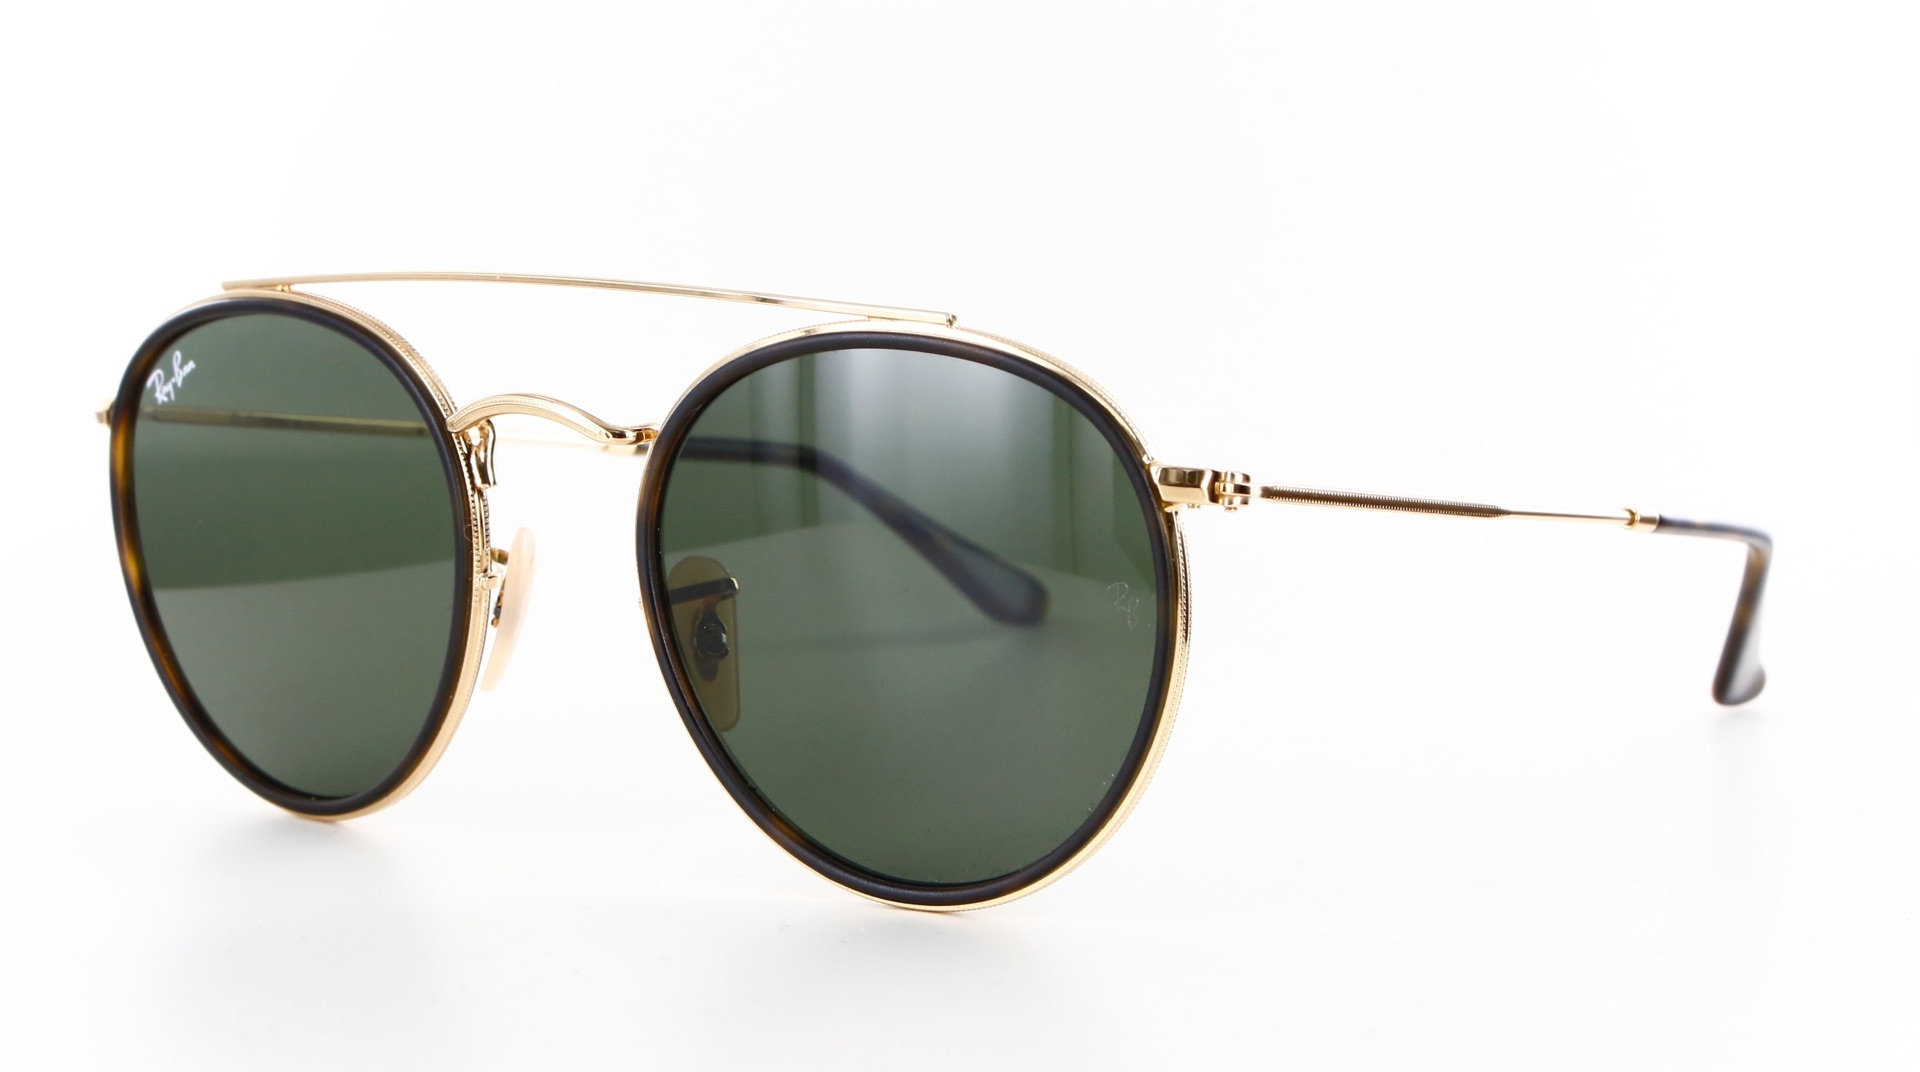 Ray-Ban - ref: 78118